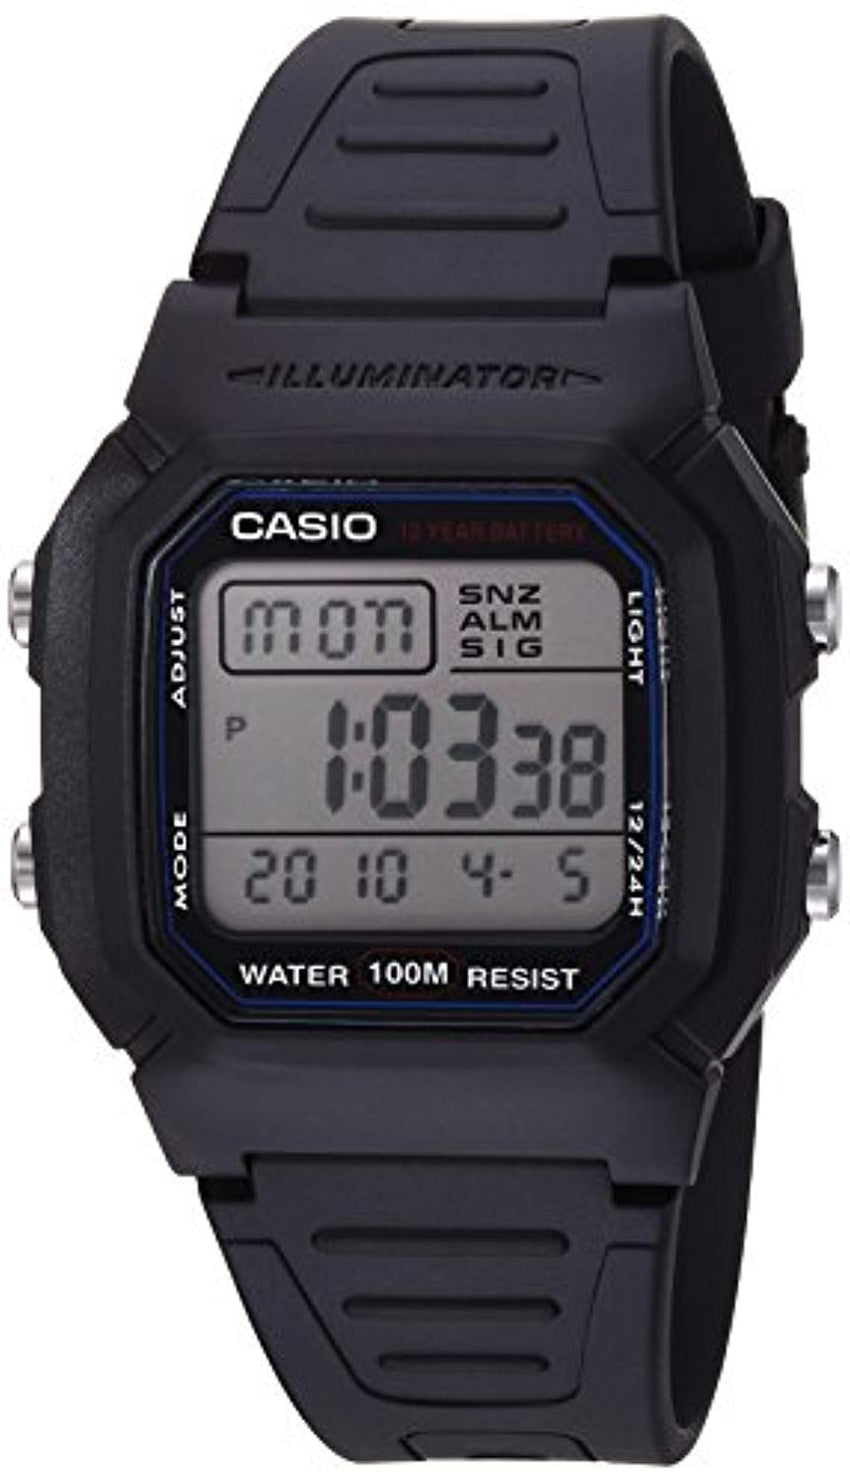 Casio Men's W800H-1AV Classic Sport Watch with Black Band 100-meter water resistance Best Digital Watch USA Imported Product